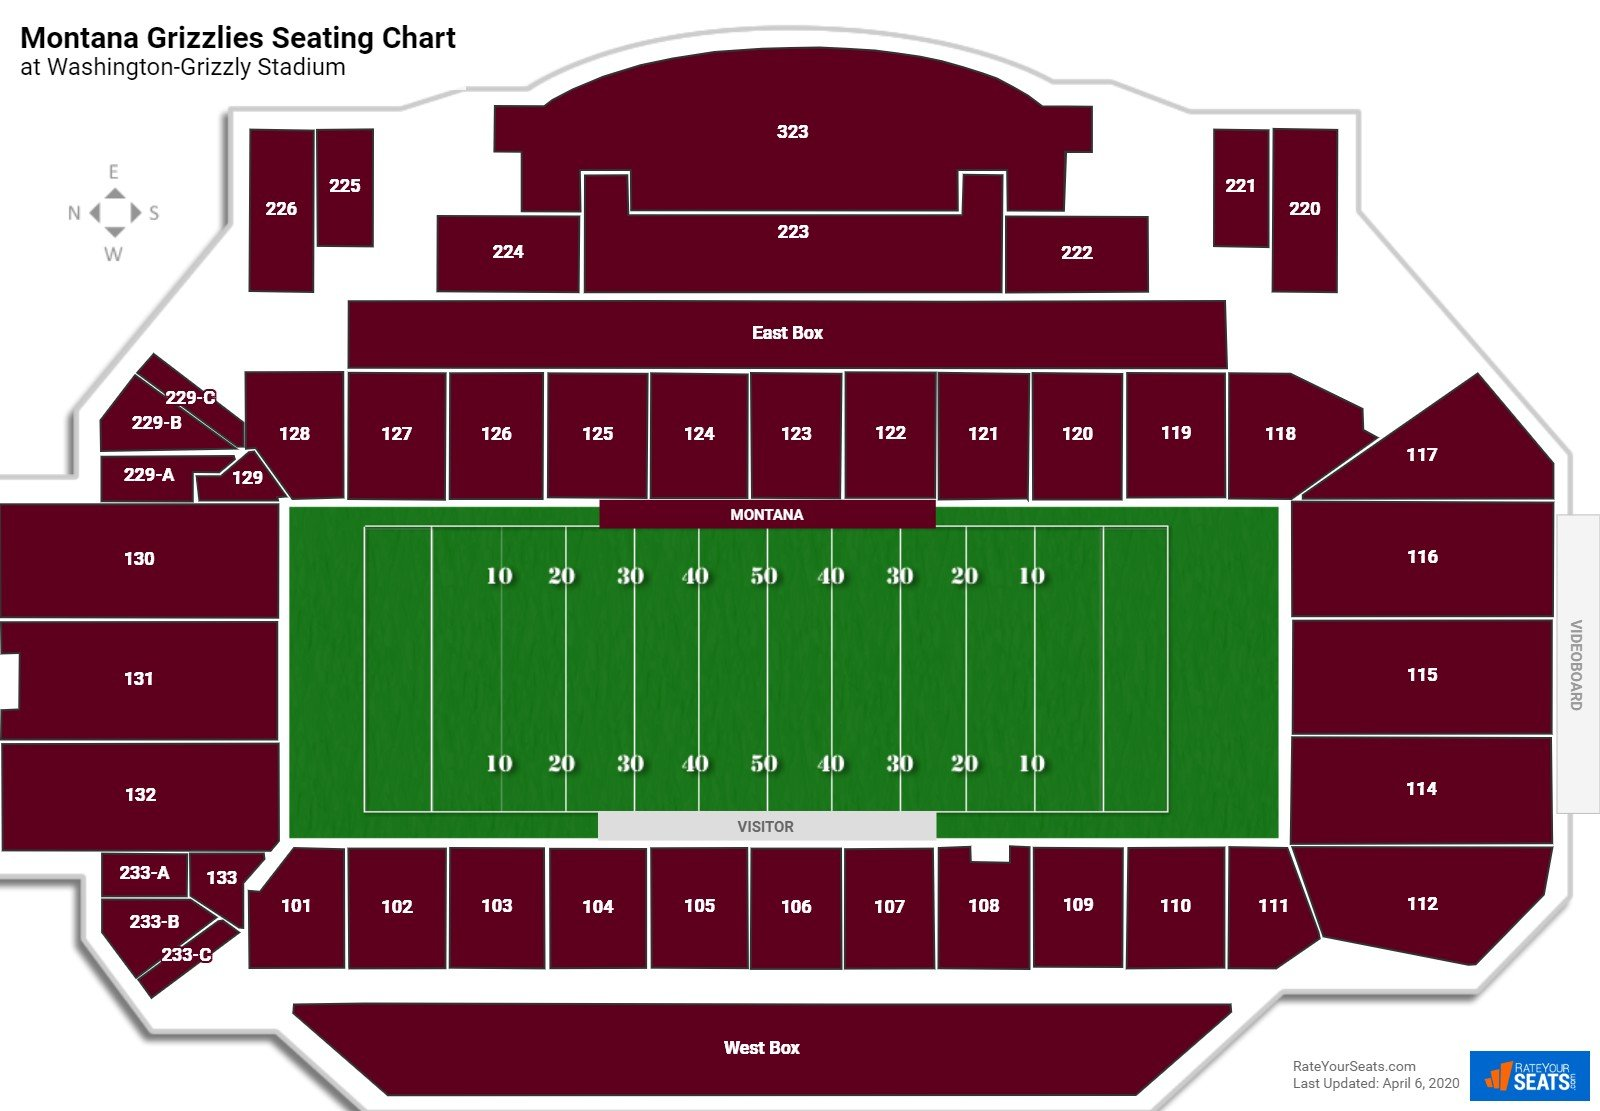 Montana Football Seating Chart